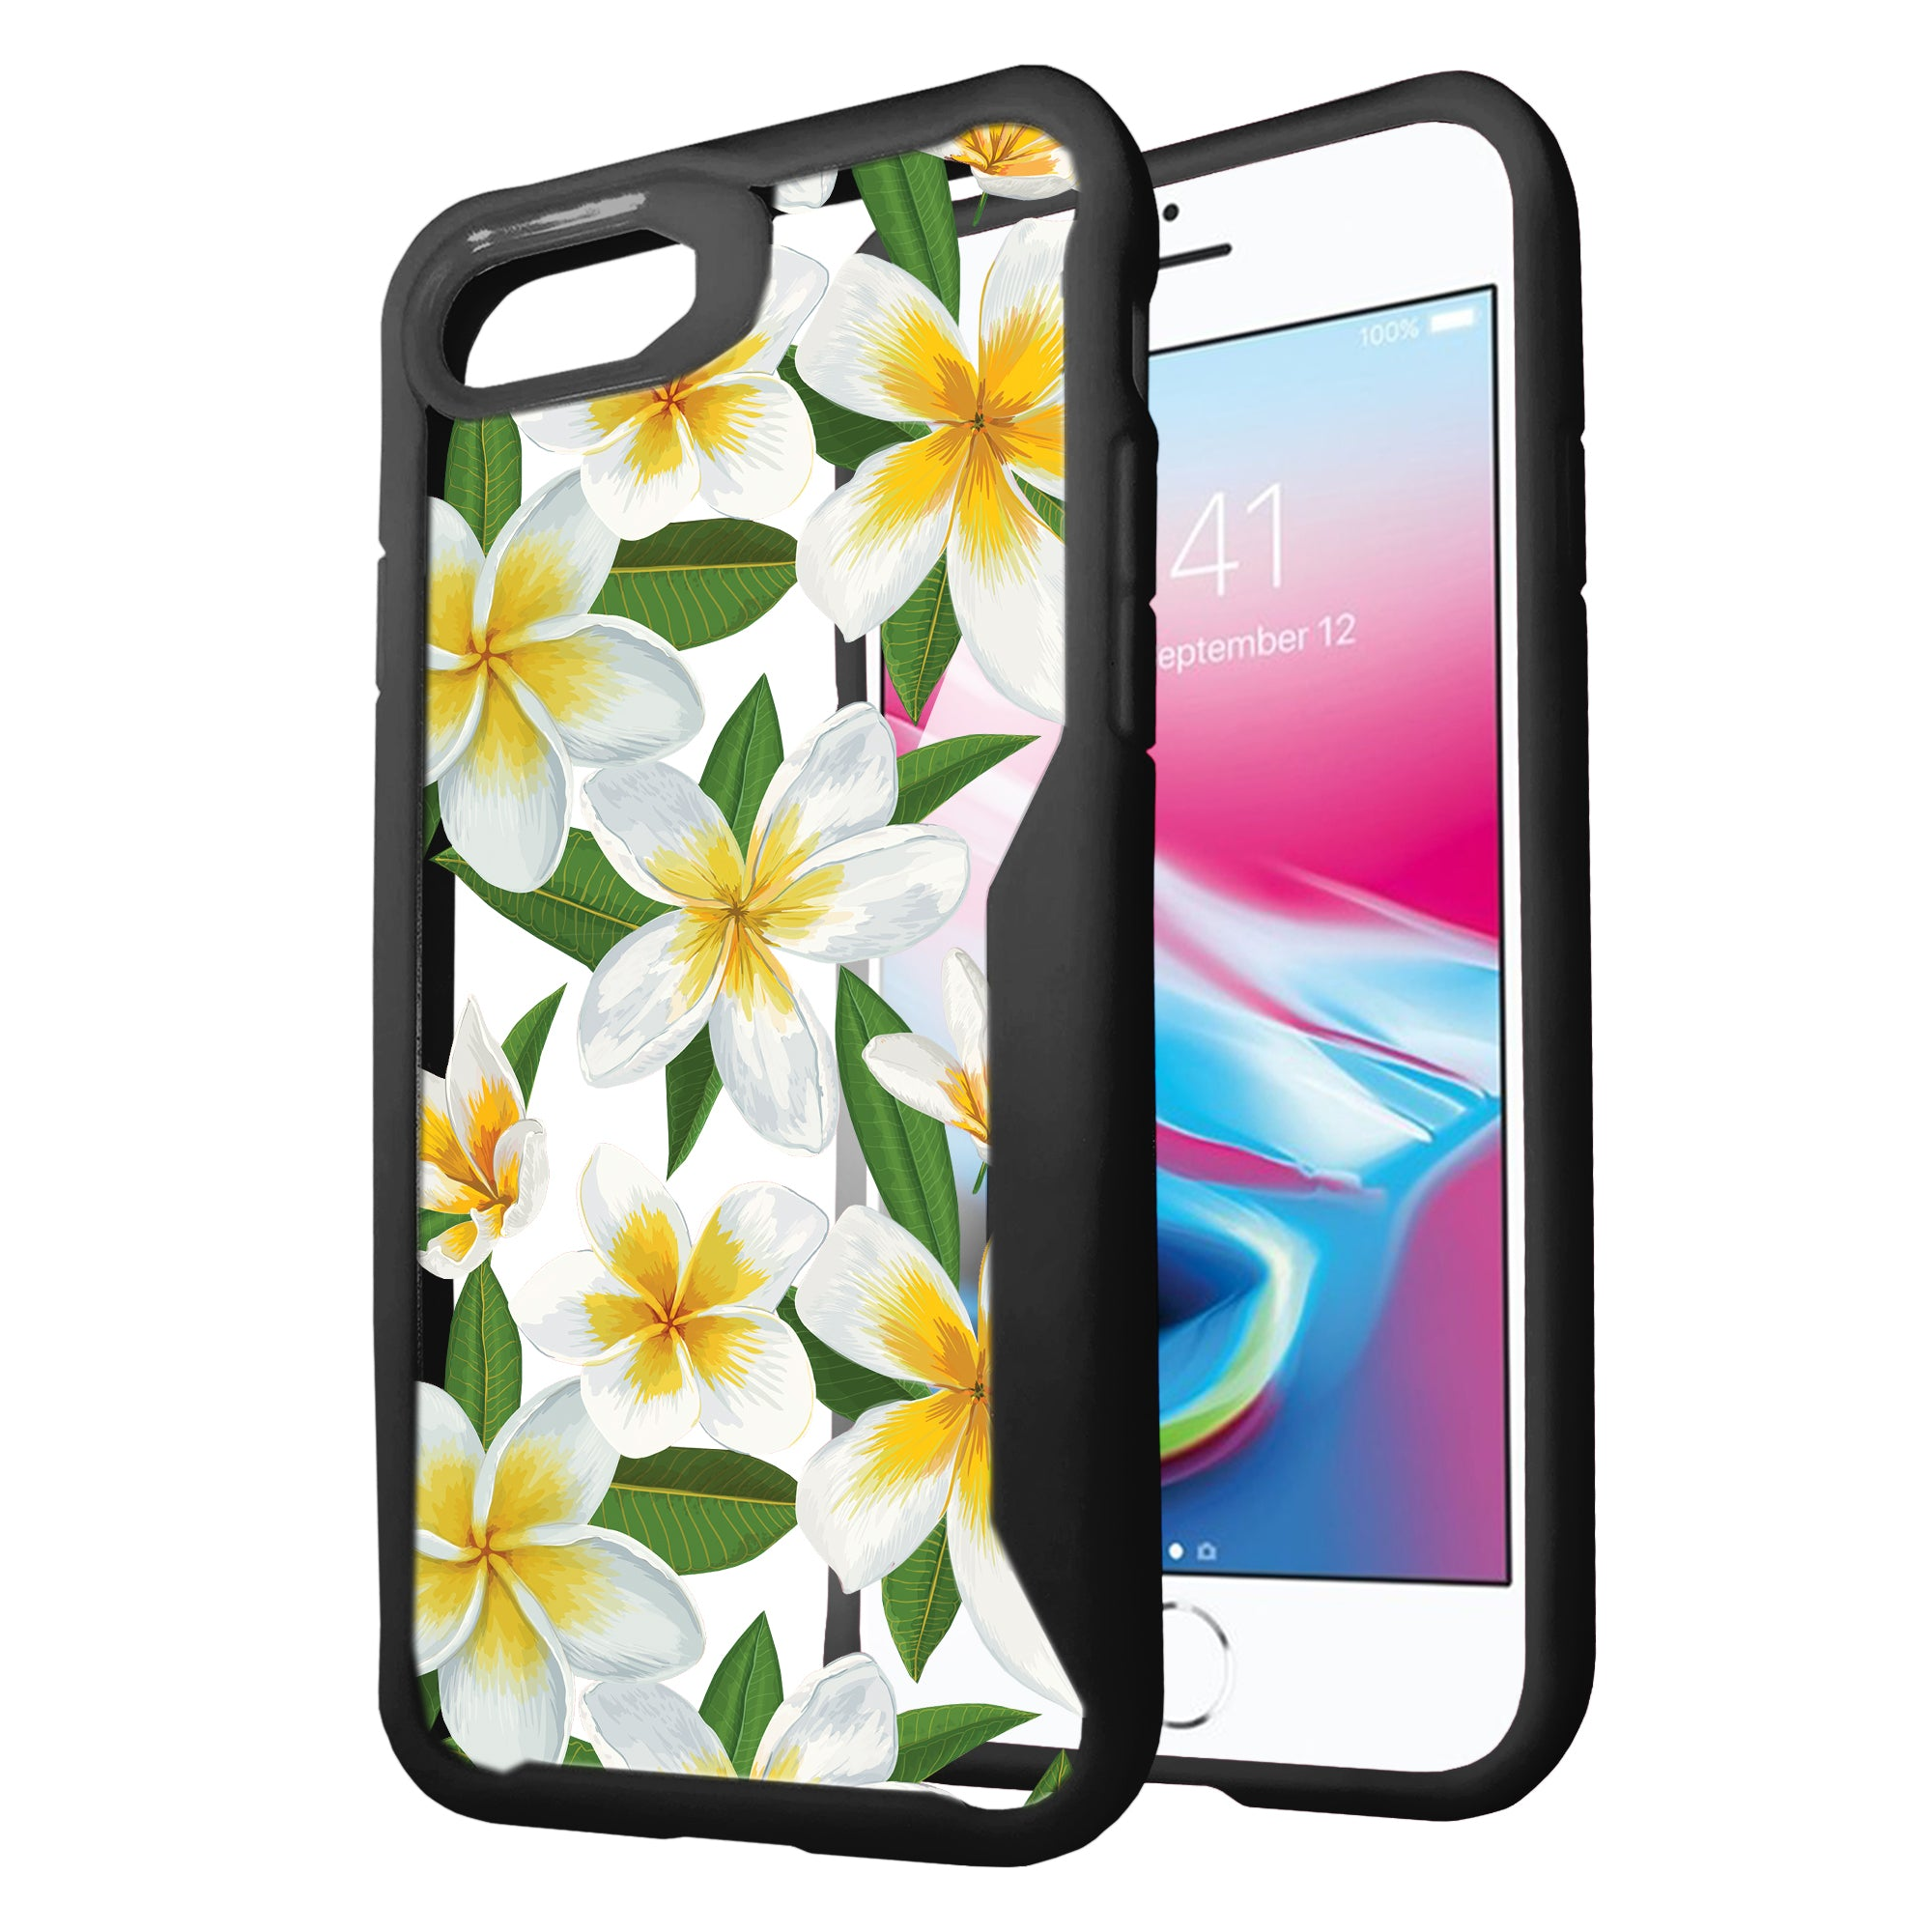 For-Apple-iPhone-7-iPhone-8-Clear-Case-w-Black-Silicone-Edges-Floral-Design thumbnail 5